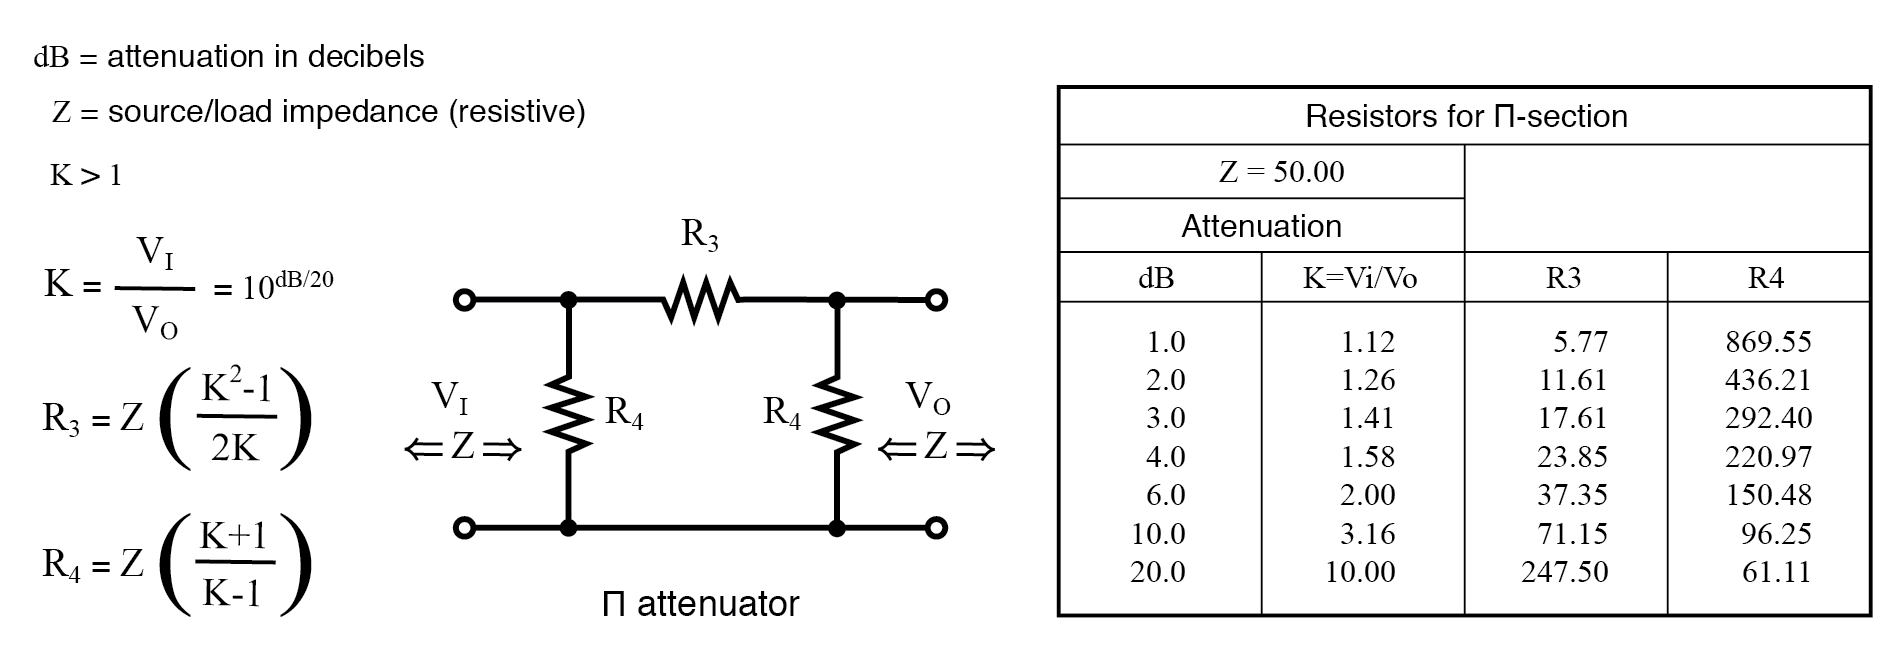 Formulas for Π-section attenuator resistors, given K, the voltage attenuation ratio, and ZI = ZO = 50 Ω.